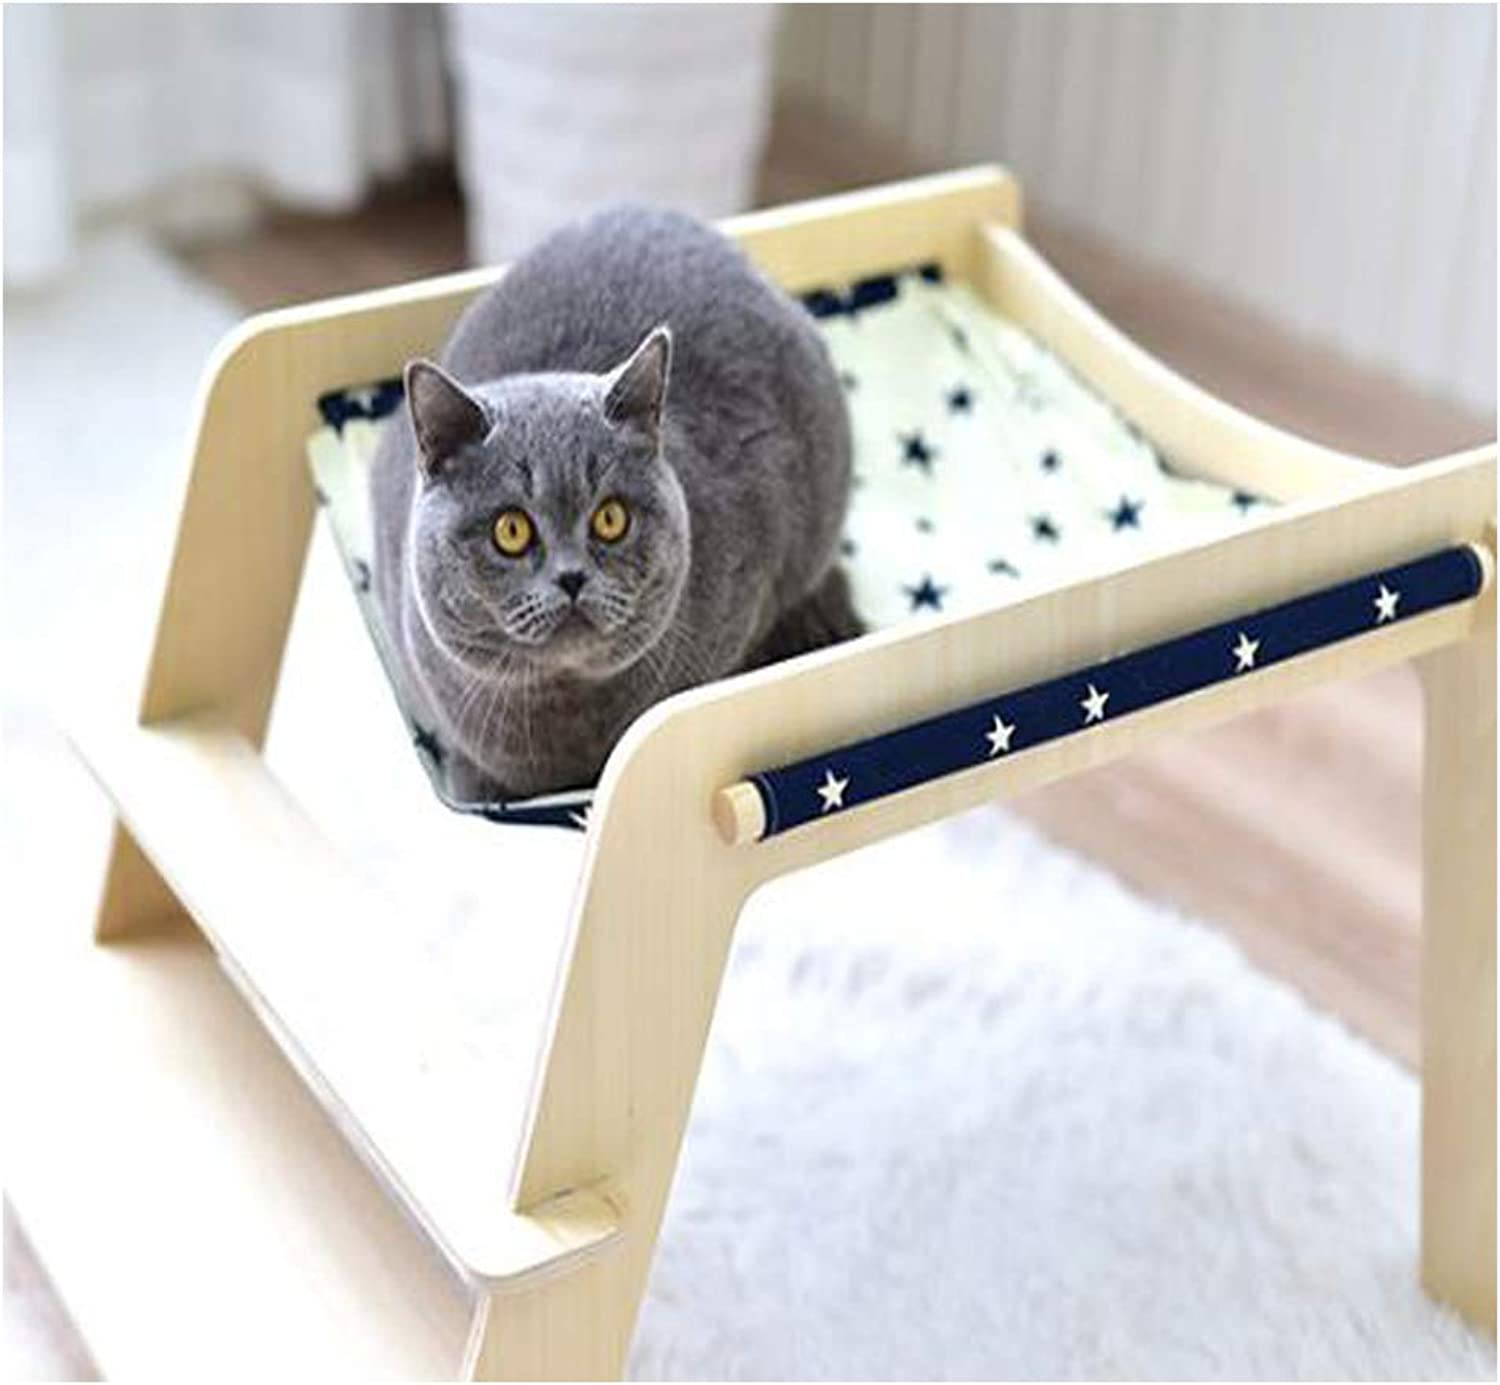 GDDYQ Pet bed, pet stair bed easy to install easy to clean, four seasons universal for cats and small dogs,1